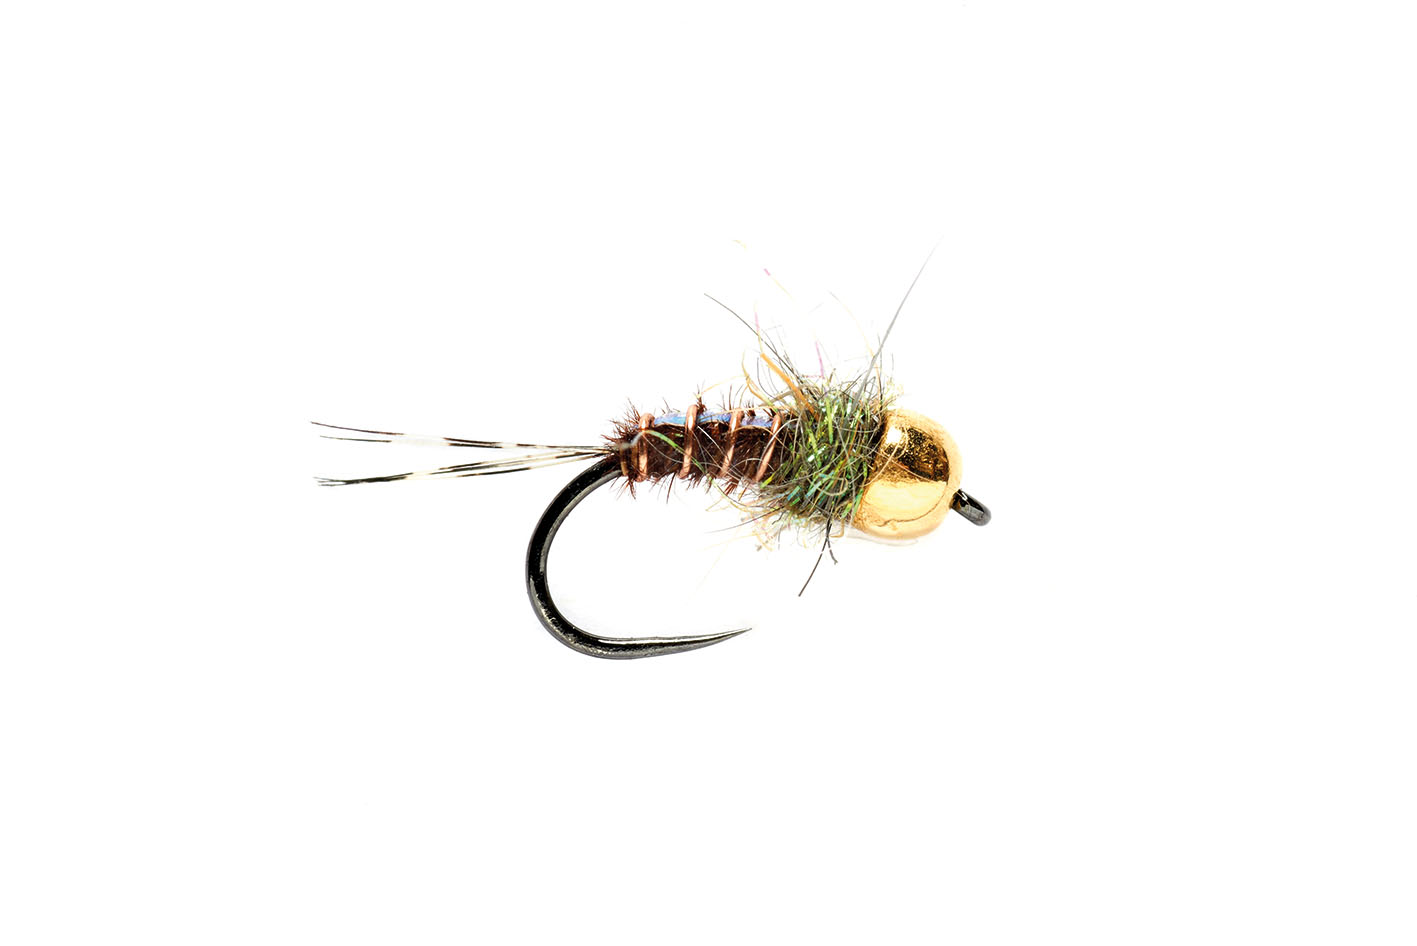 Pheasant Tail Flashback (TBH) Barbless